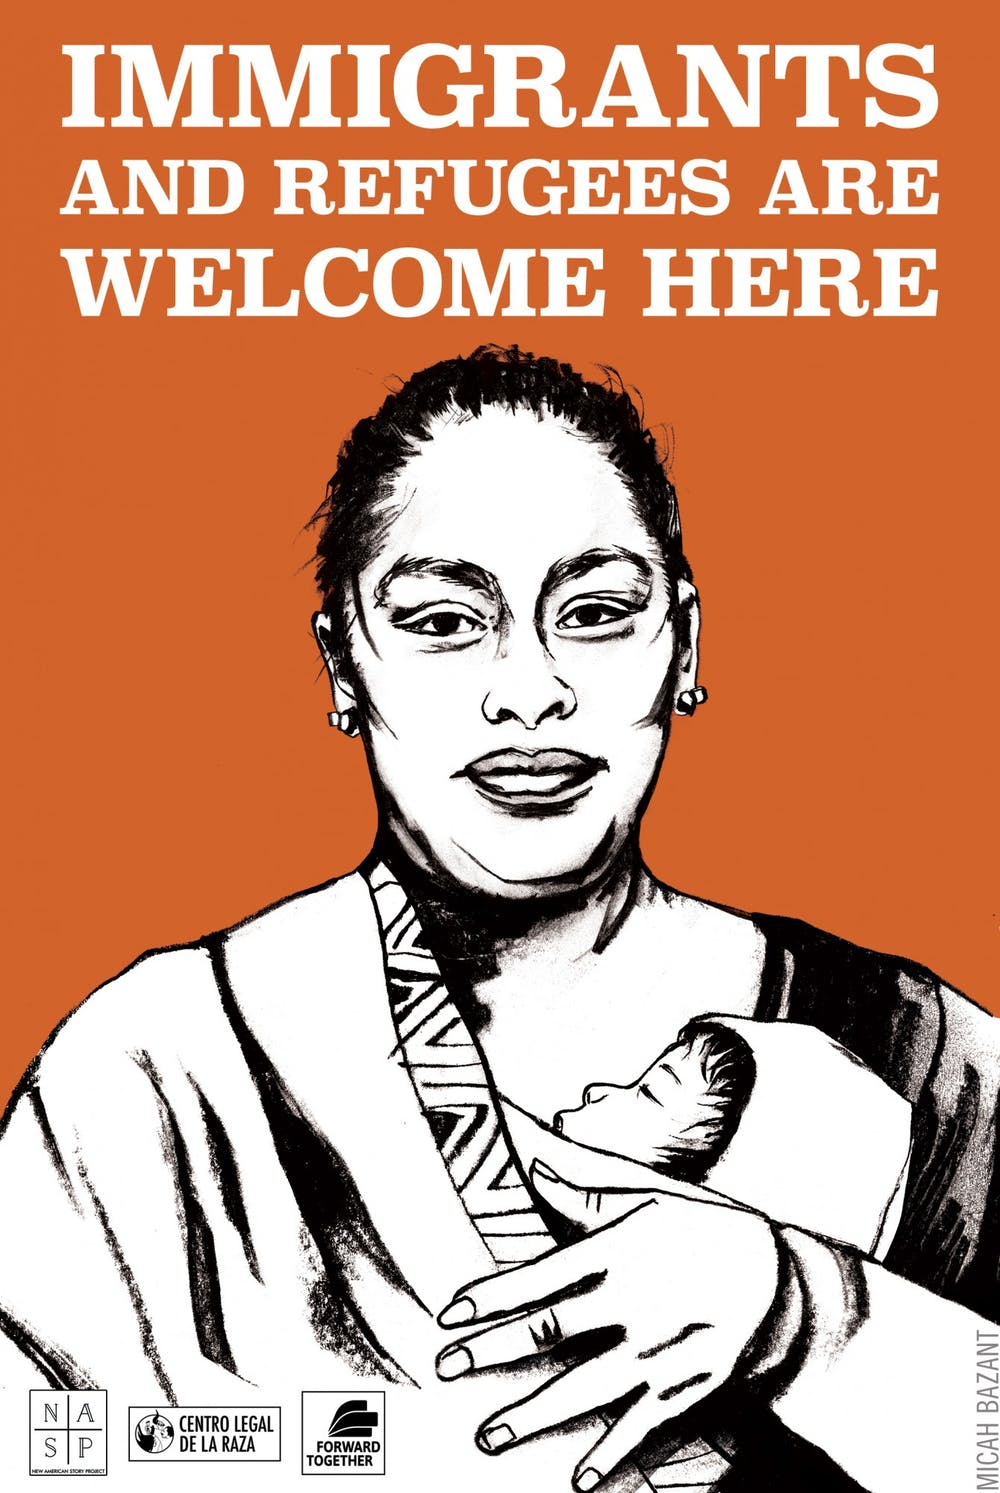 <p>A poster produced by the New American Story Project by artist Micah Bazant. Bazant worked from a photograph of a Mayan women who received asylum.</p>